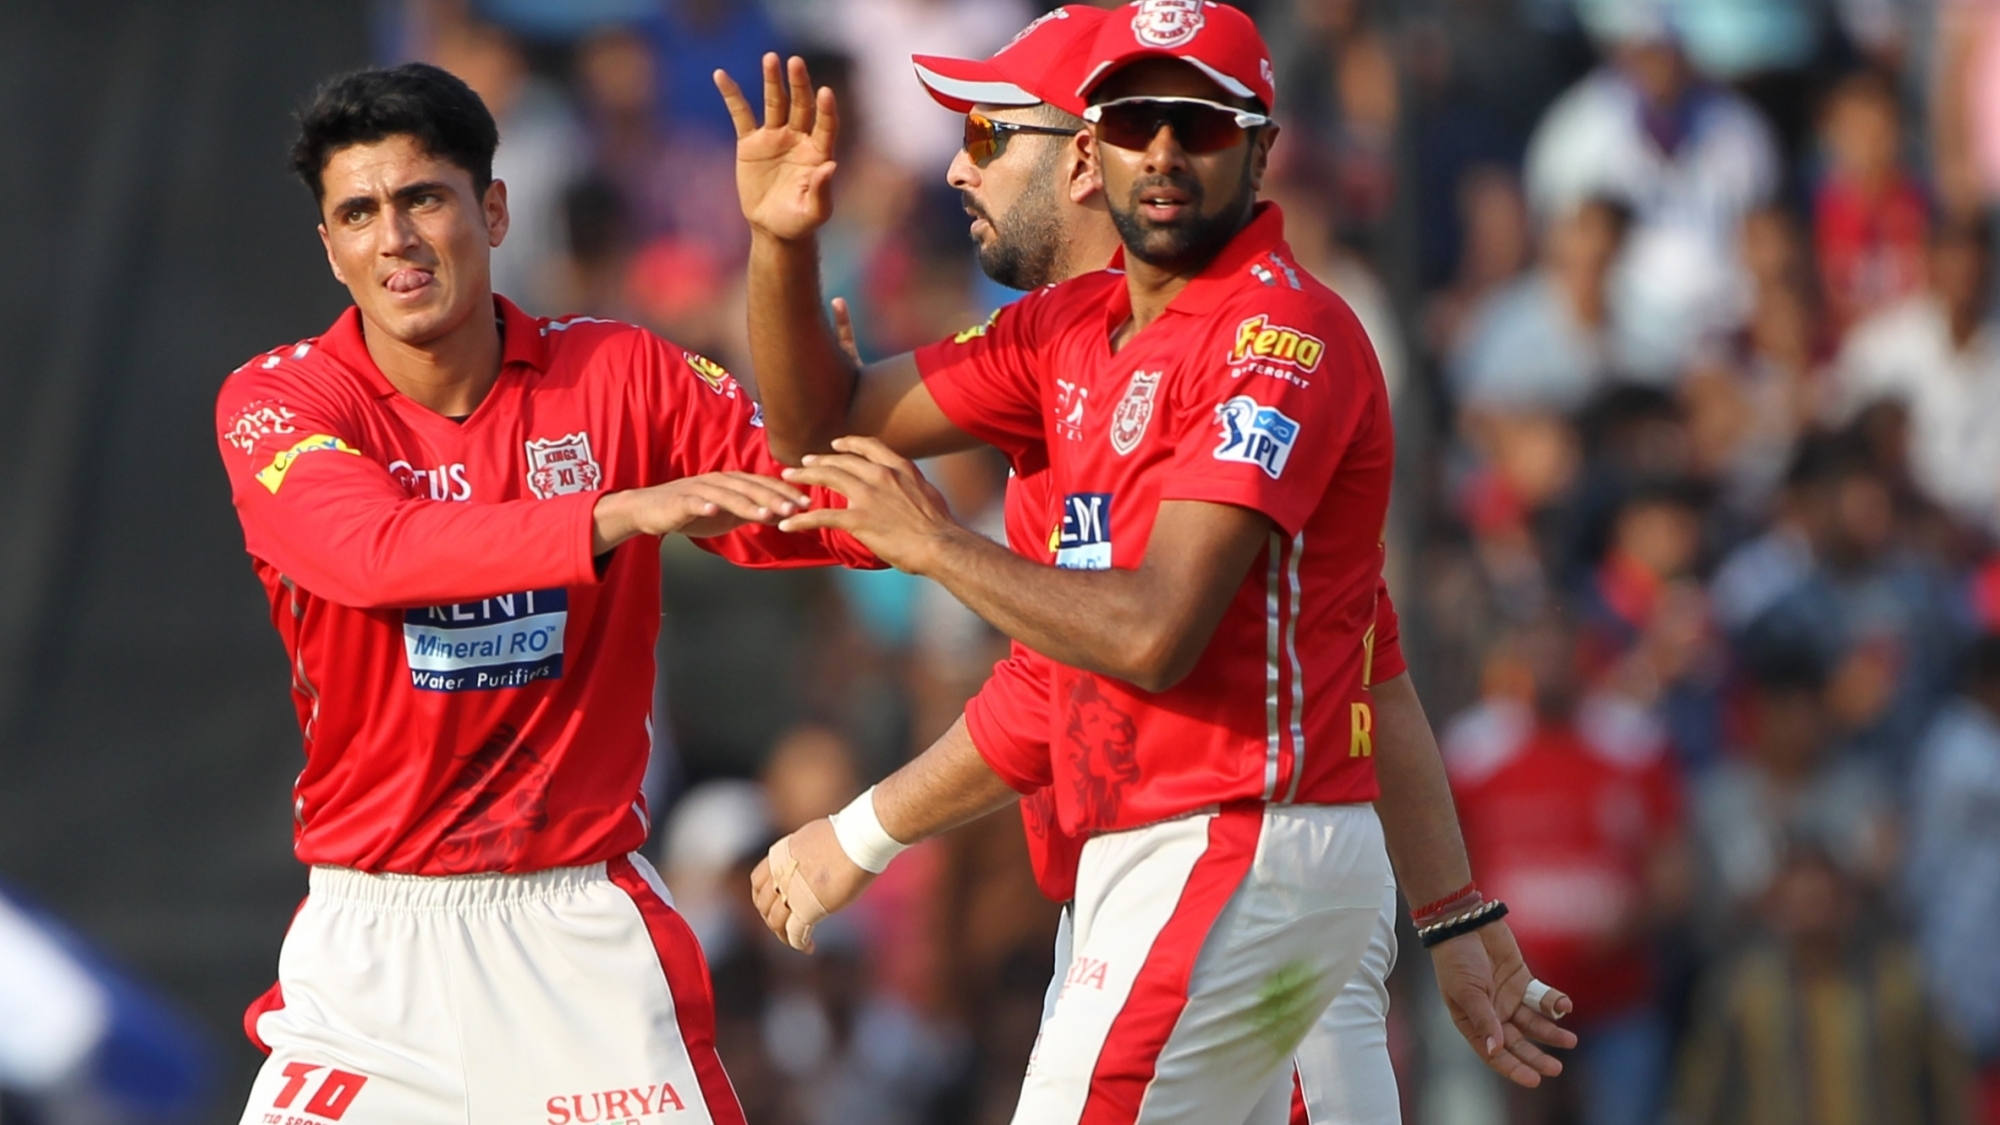 IPL 2018: Twitter reacts to KXIP's emphatic victory over Delhi Daredevils